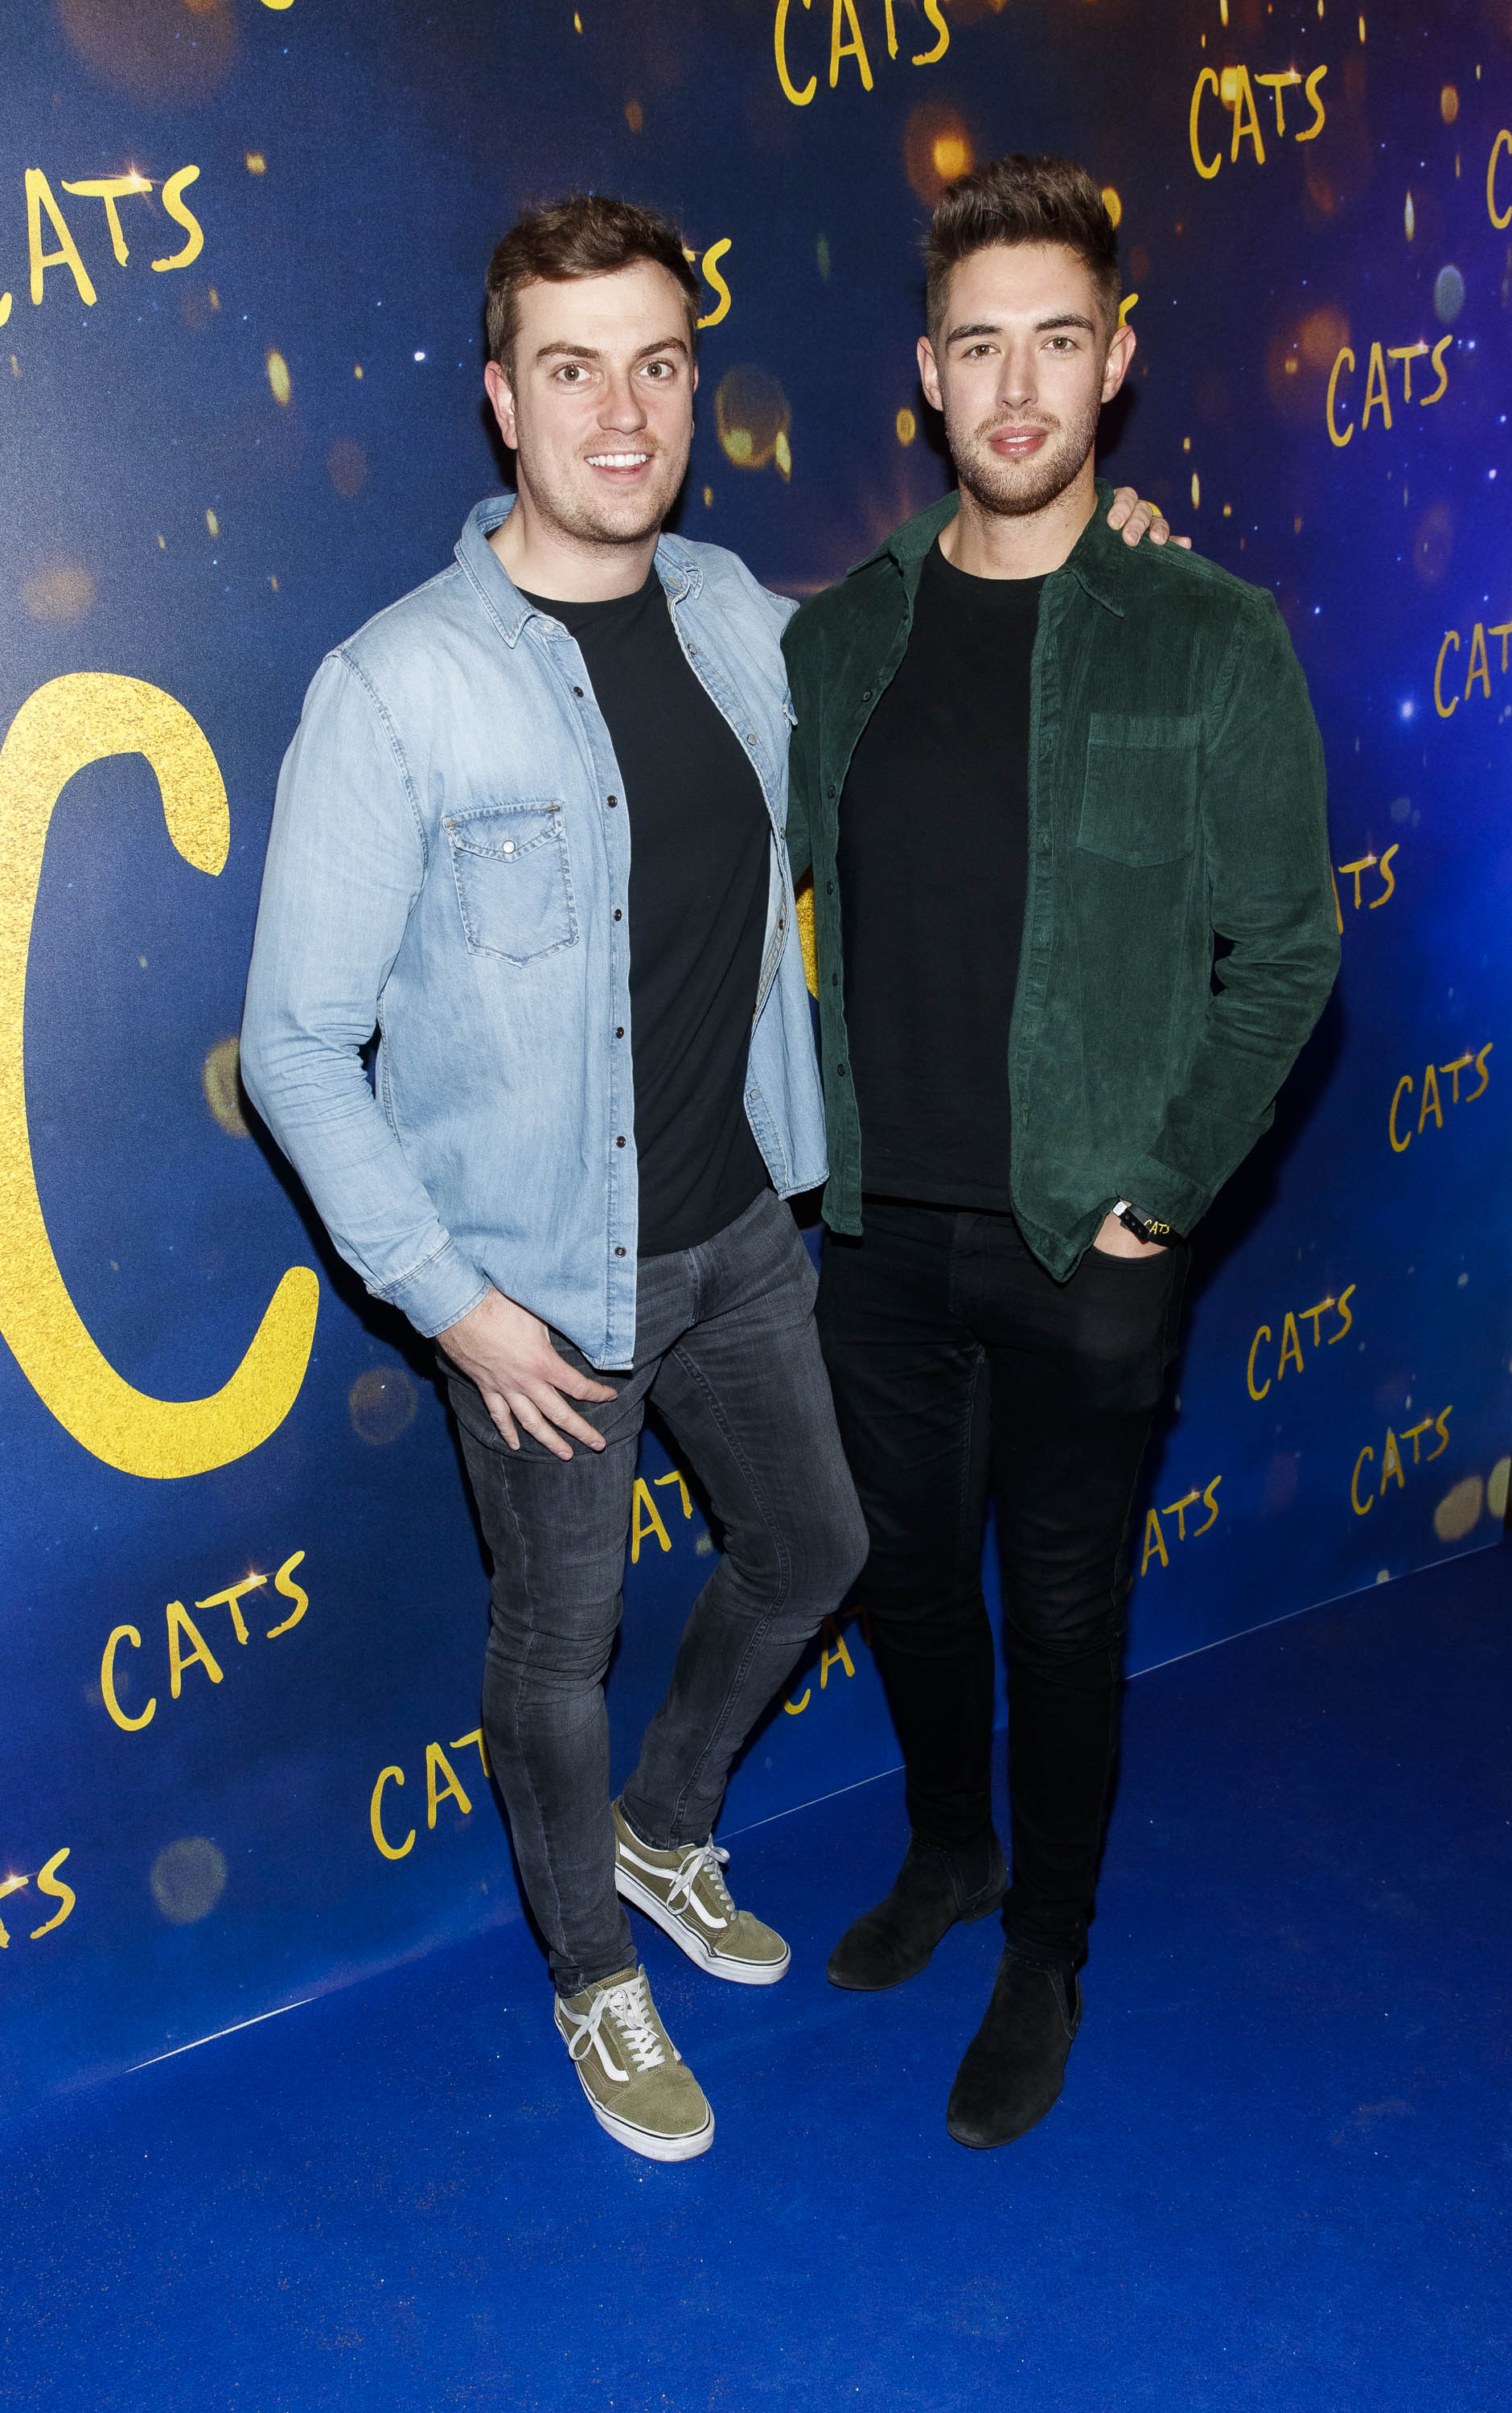 Alan Cawley and Peter Lynch pictured at the Irish premiere screening of 'Cats' at The Stella Theatre, Rathmines. Picture: Andres Poveda